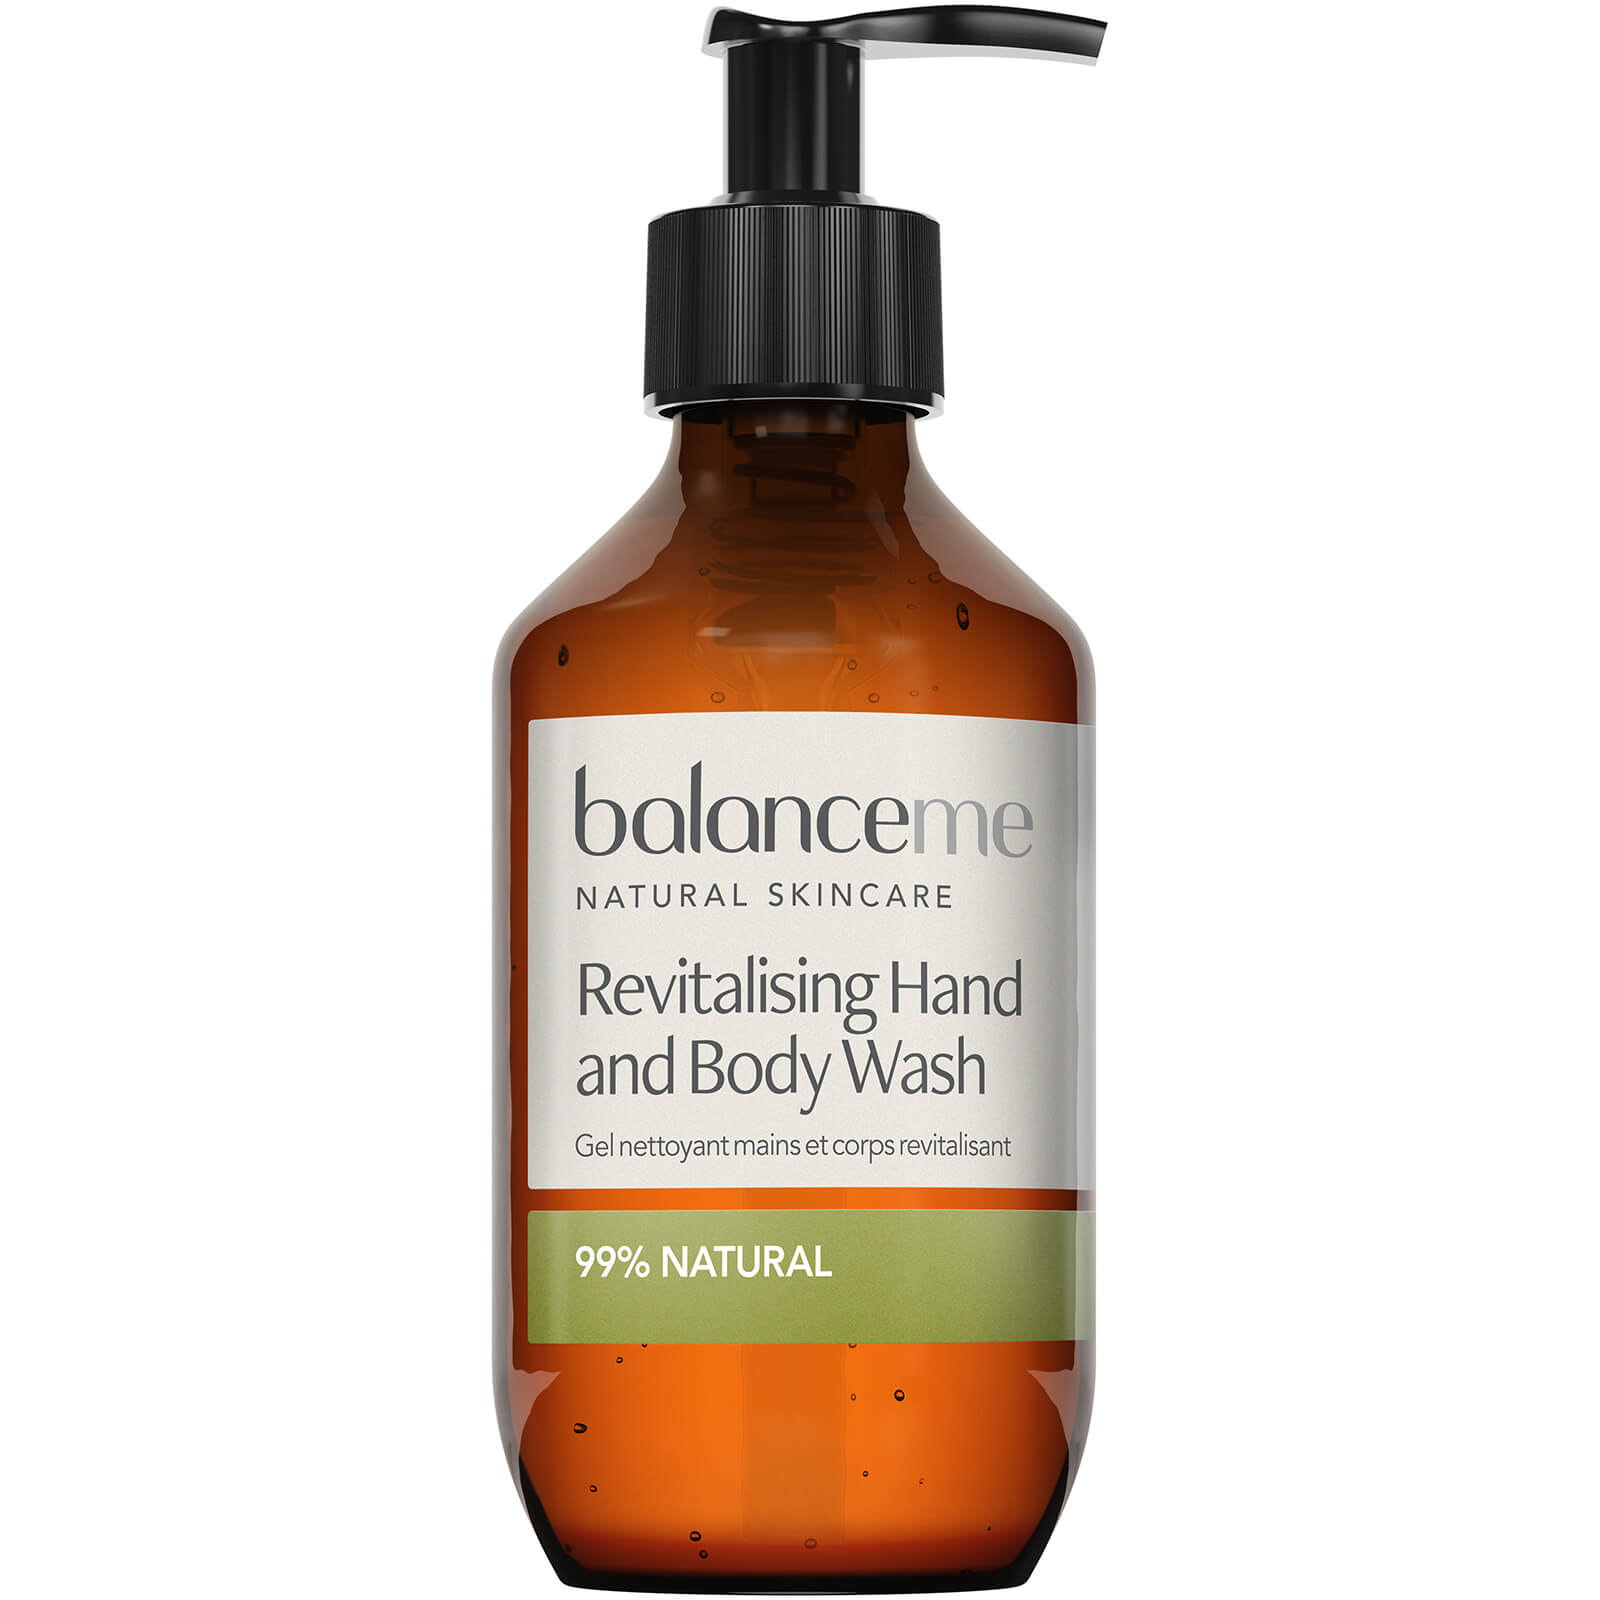 Balance Me Revitalising Hand And Body Wash 280ml Beautyexpert Natural Cotton Ultra Slim Overnight 4s Product Description Combining Naturally